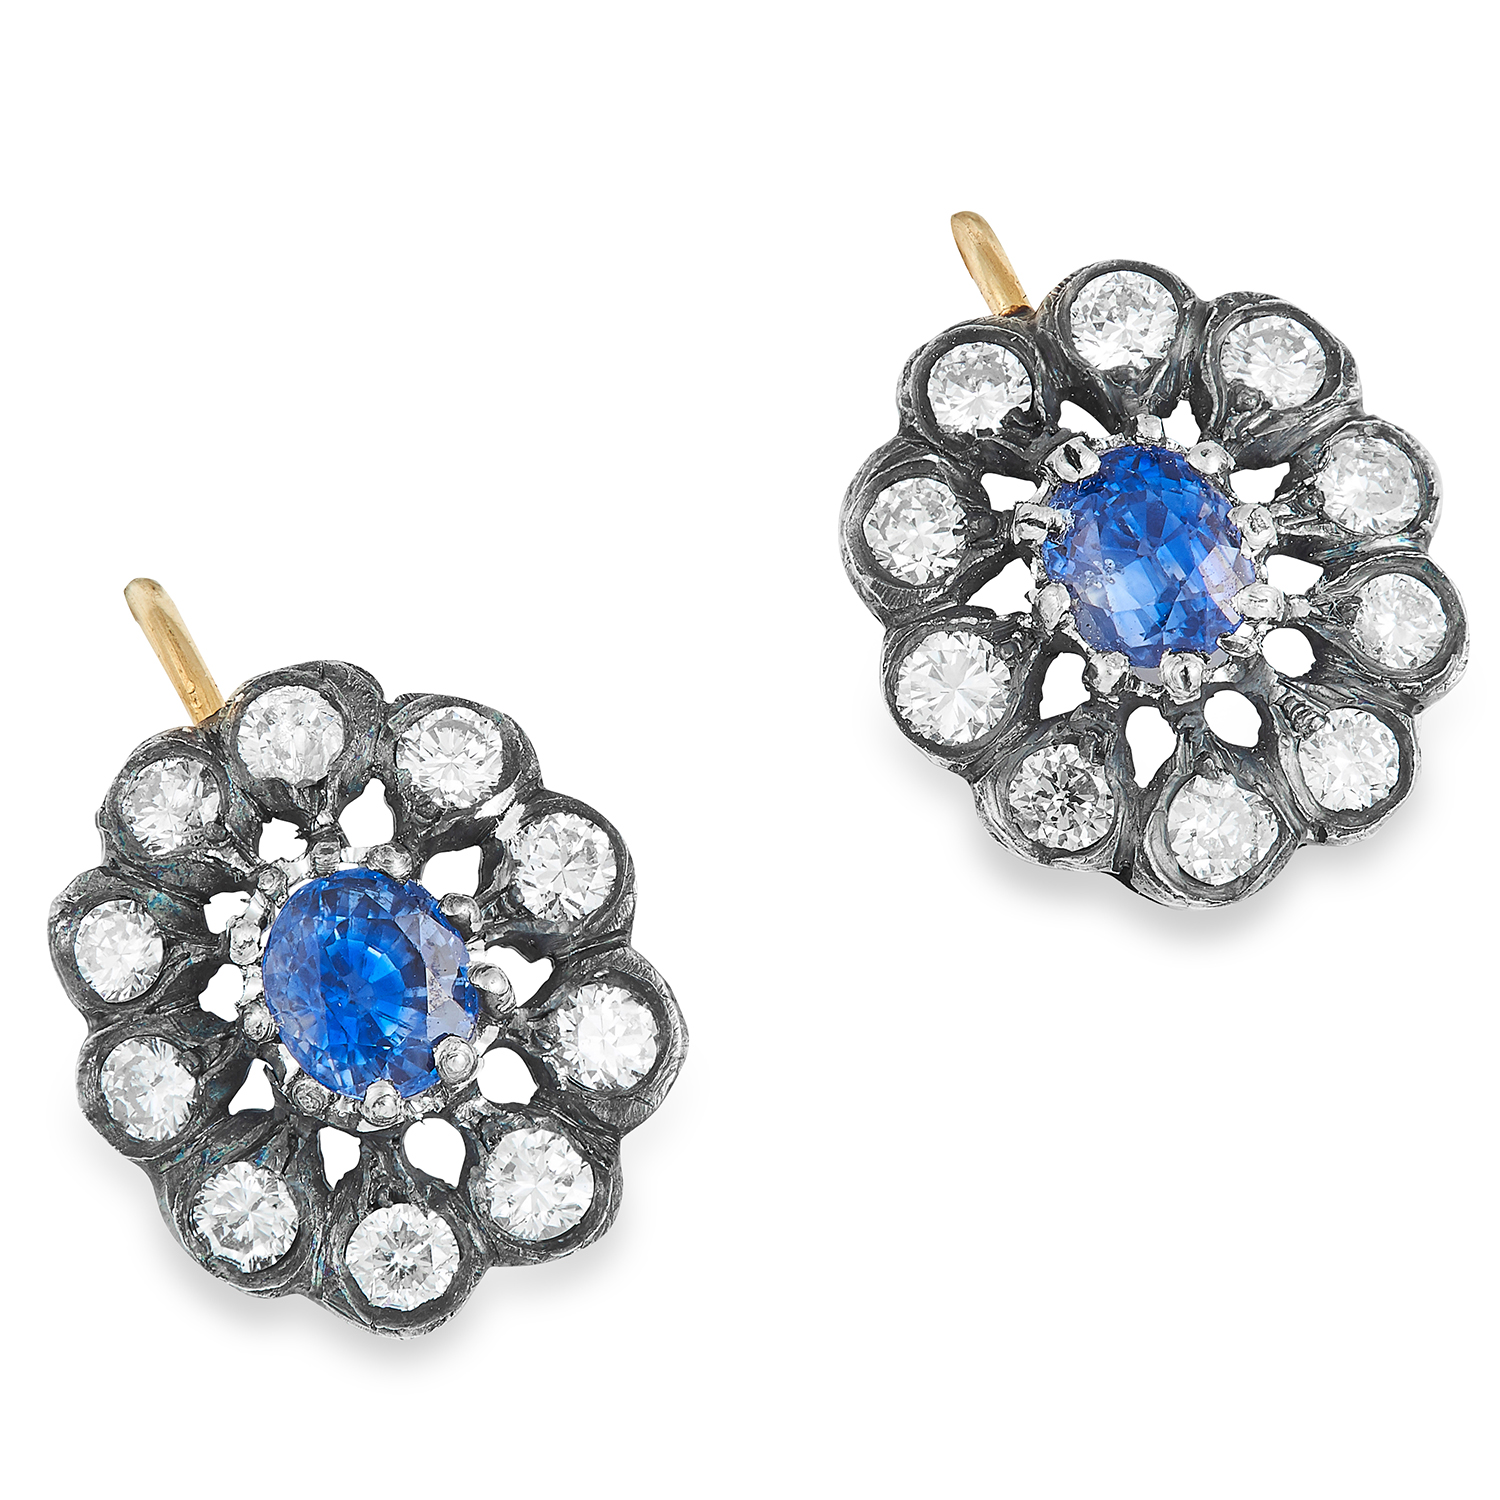 SAPPHIRE AND DIAMOND CLUSTER EARRINGS each set with an oval cut sapphire in a cluster of round cut